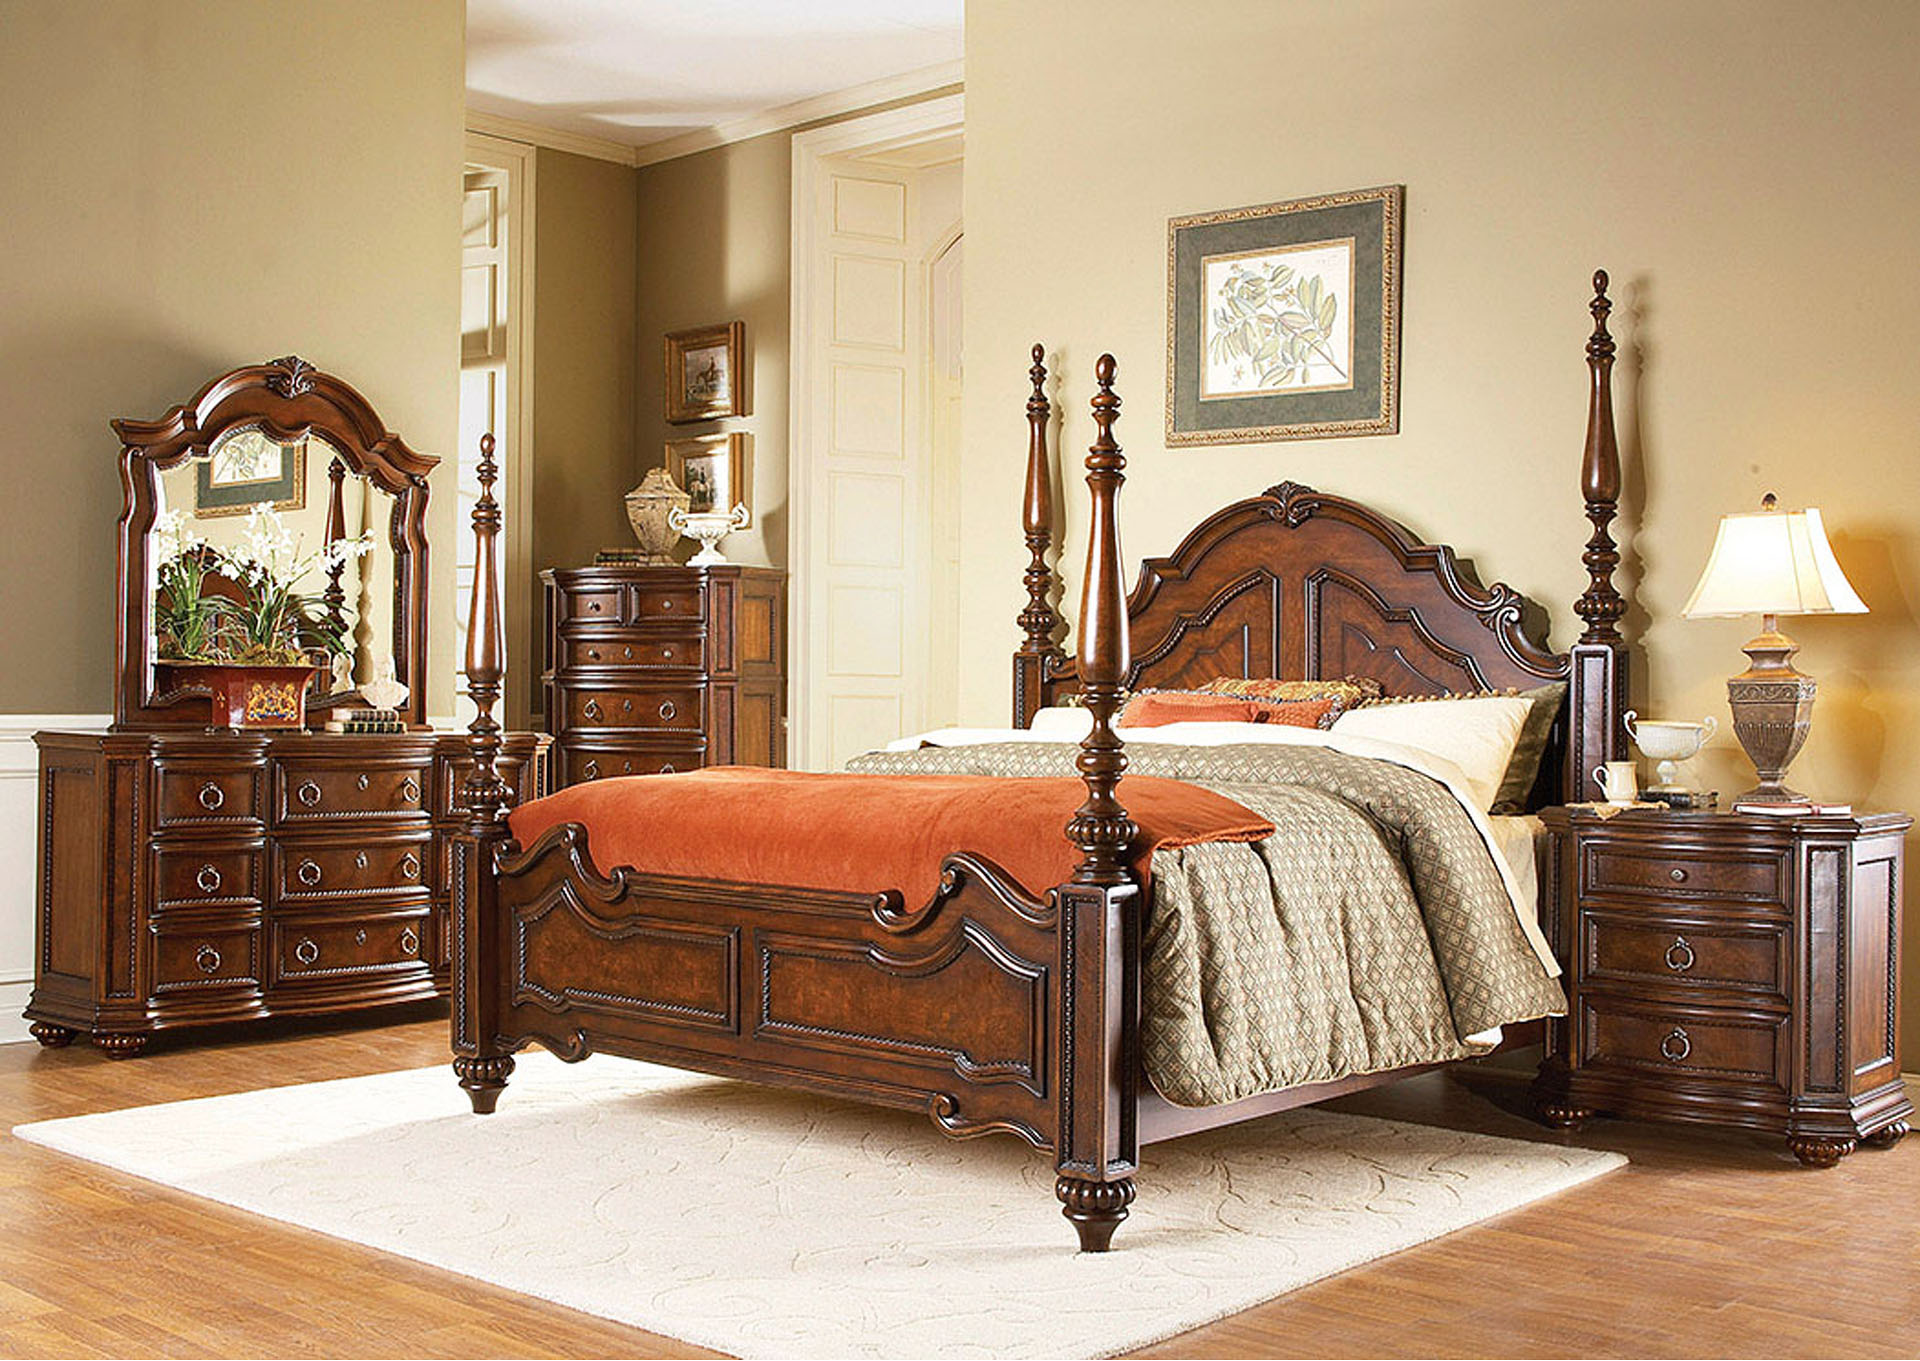 Prenzo Warm Brown Dresser,Homelegance